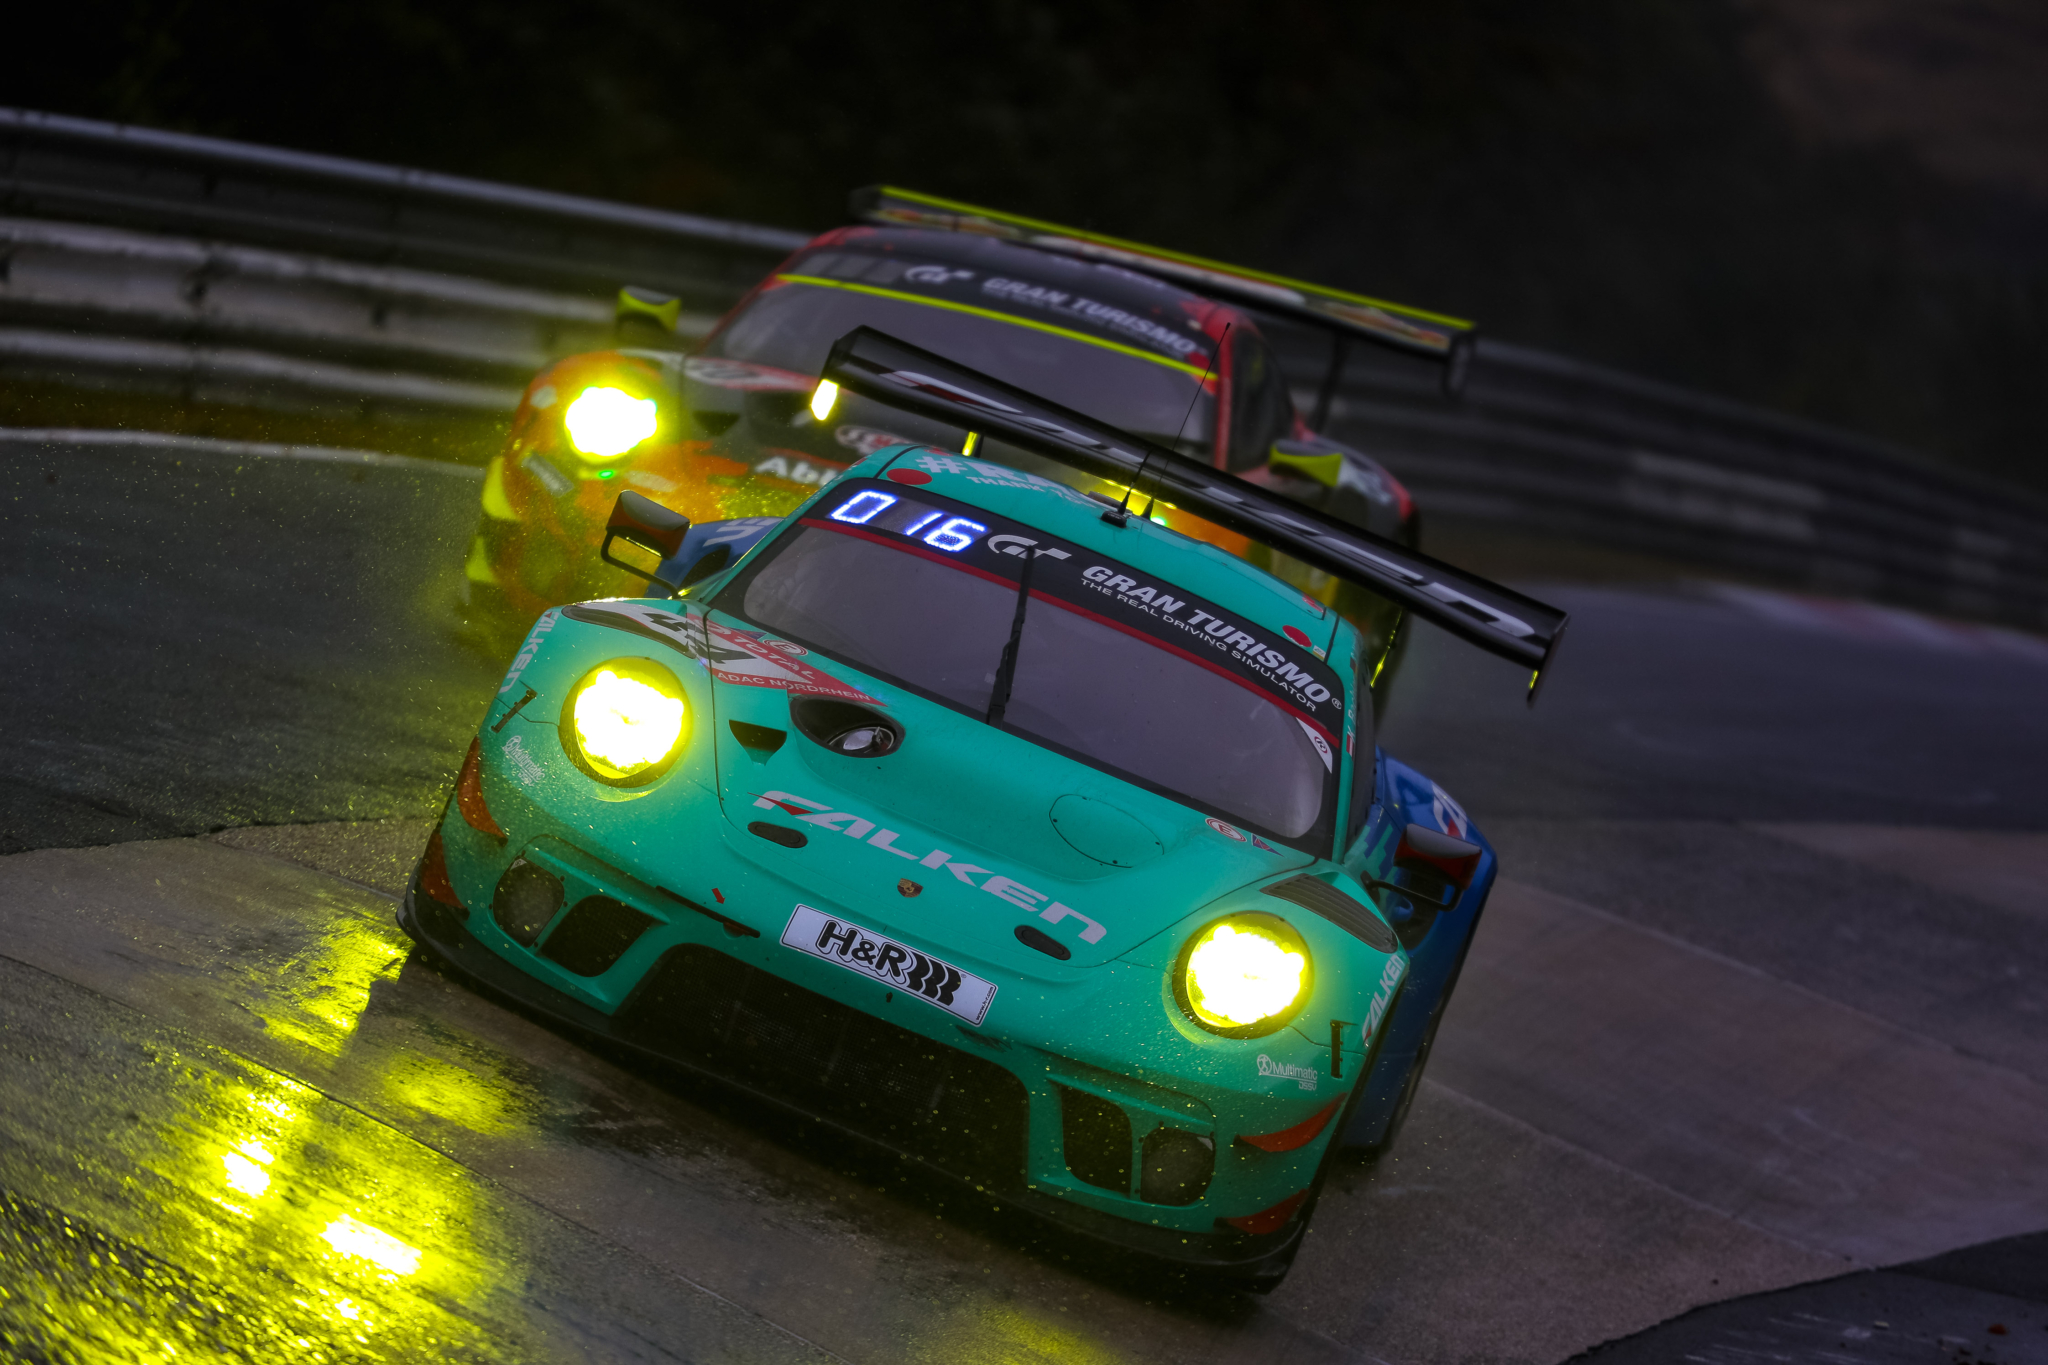 Top 10 for Falken at challenging 2020 Nürburgring 24 Hours